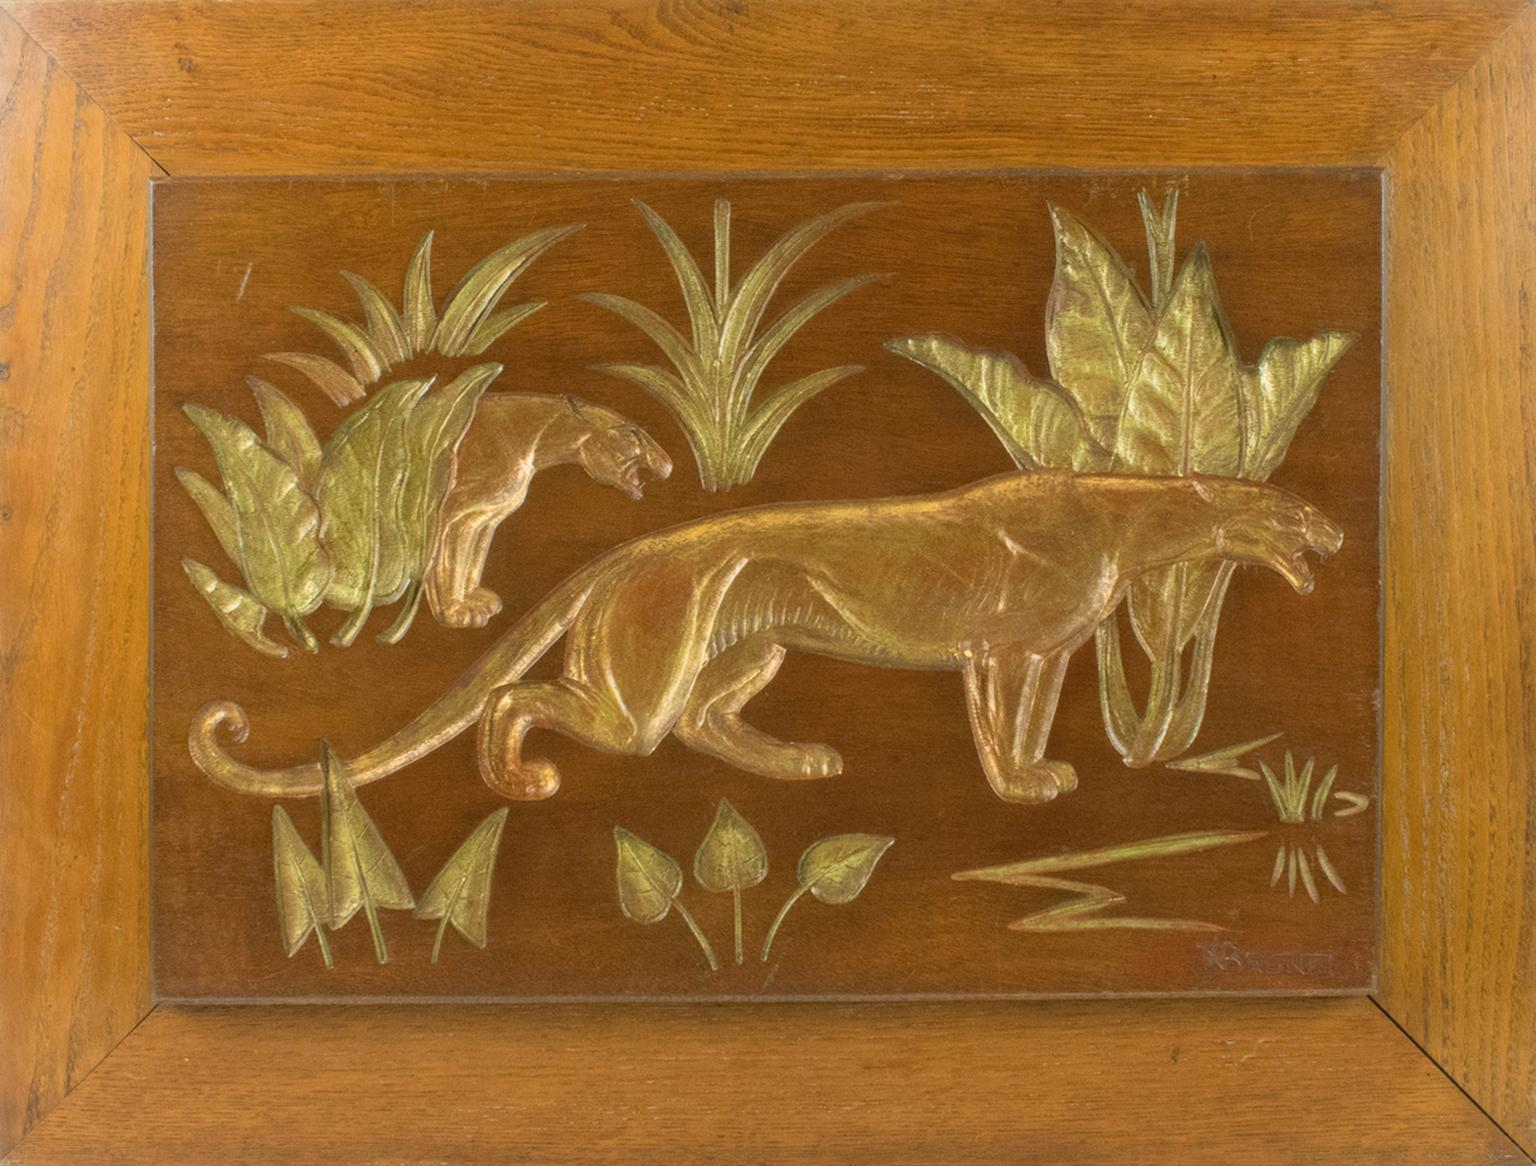 Art Deco Panthers in the Jungle Carved Gilt Wood Panel by N. R. Brunet